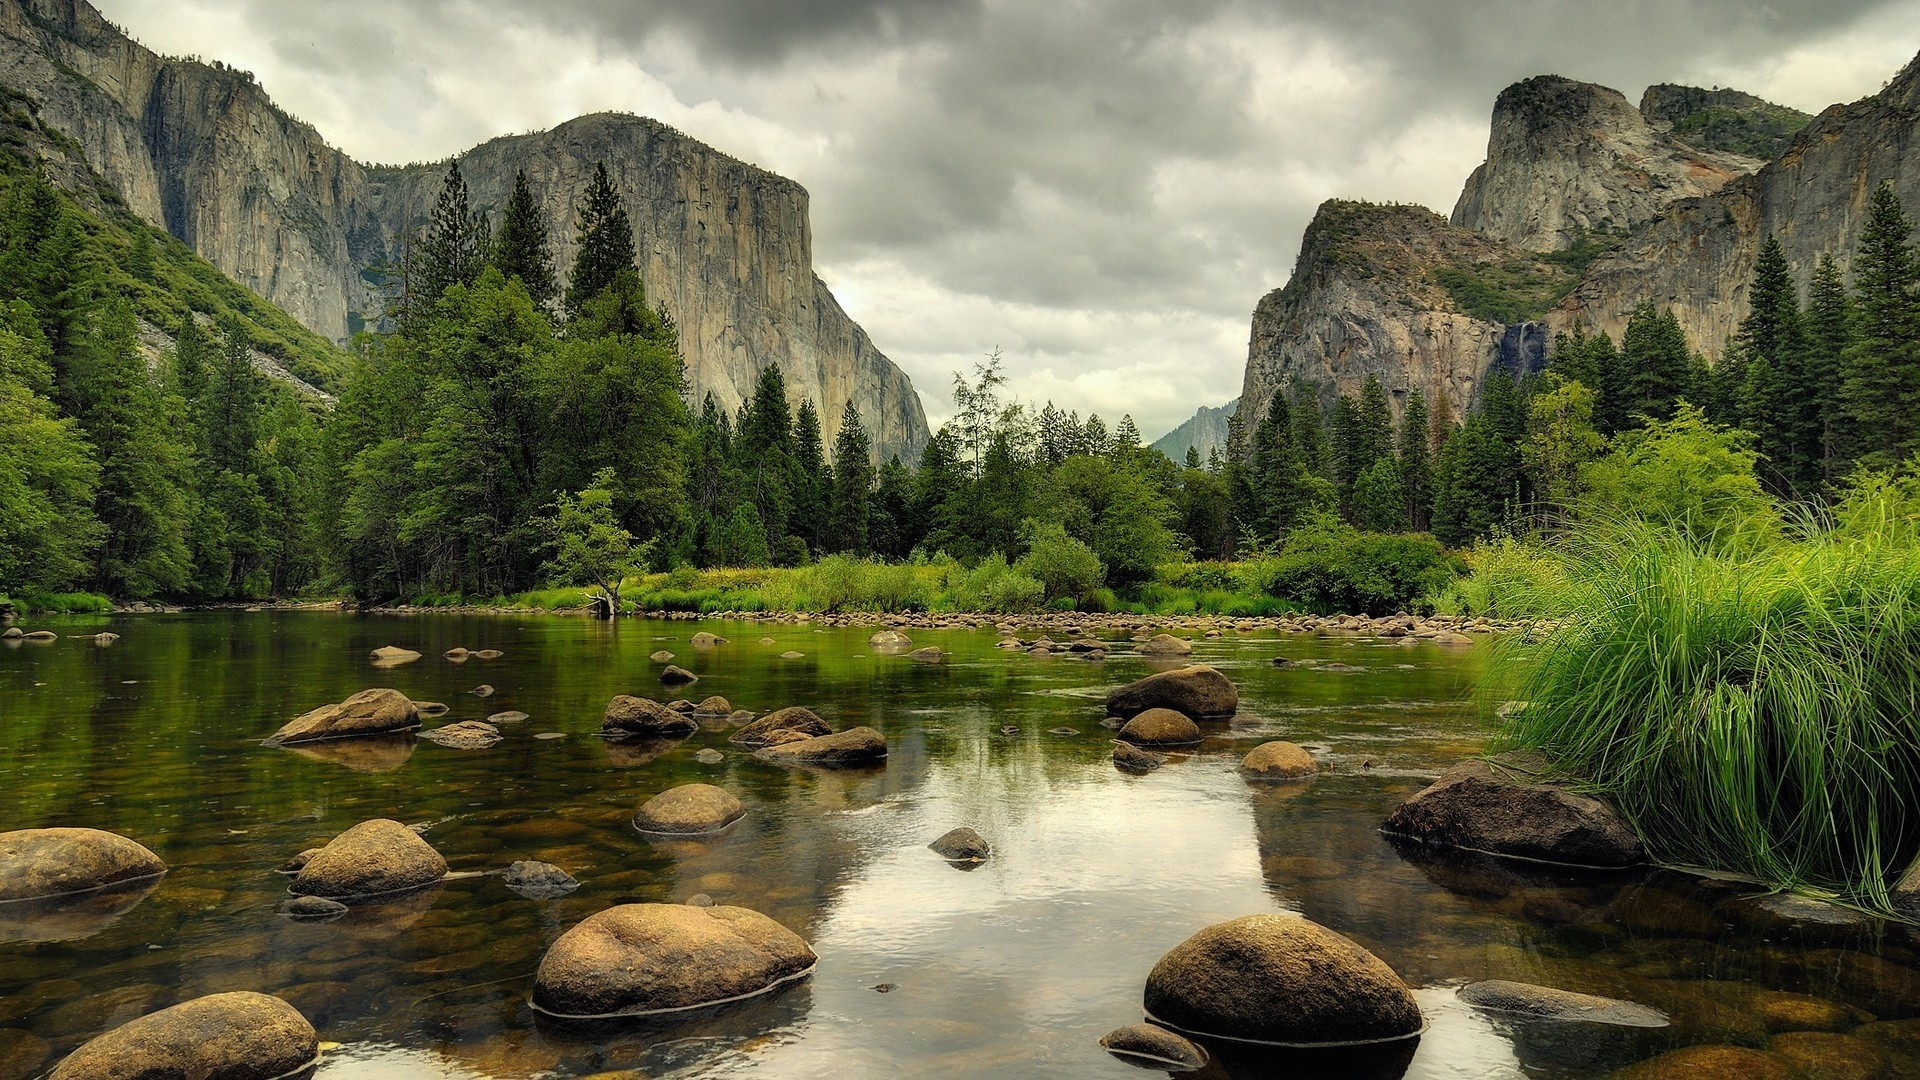 High Definition Nature Wallpaper (57+ images)